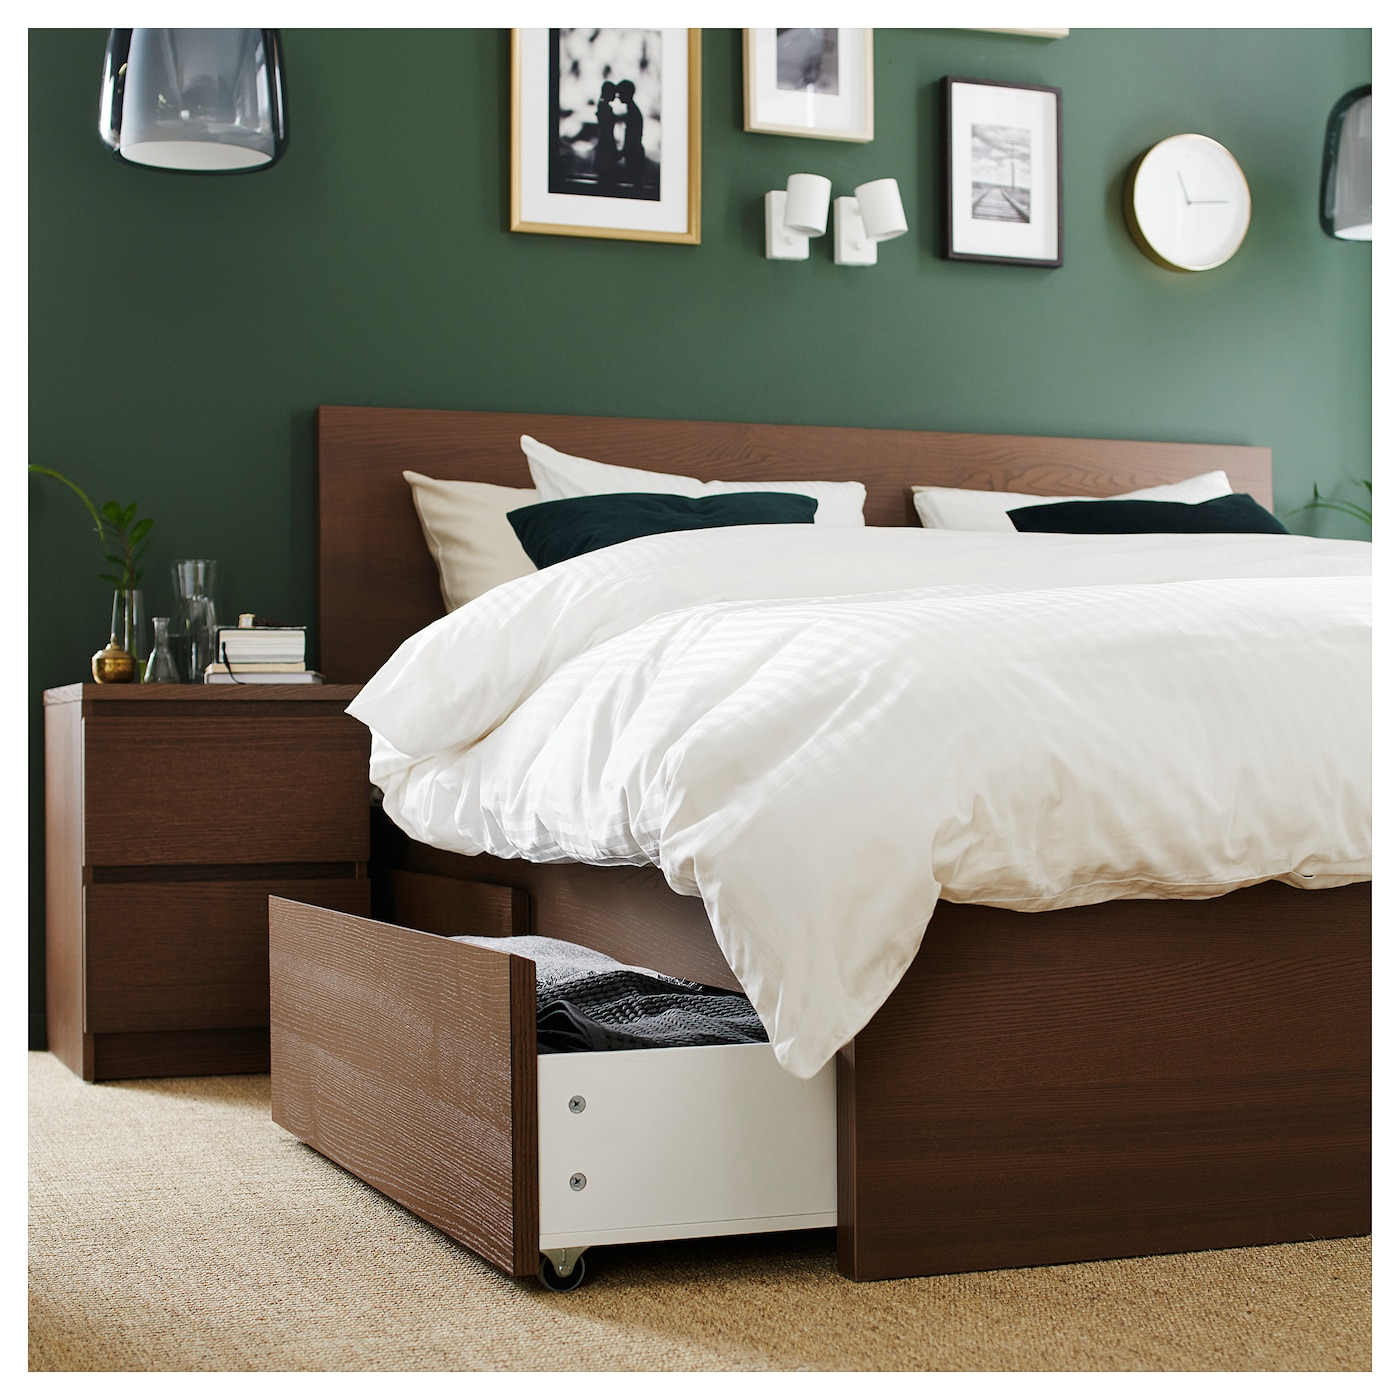 Malm Bed Frame High W 4 Storage Boxes Brown Stained Ash Veneer Luroy Ikea